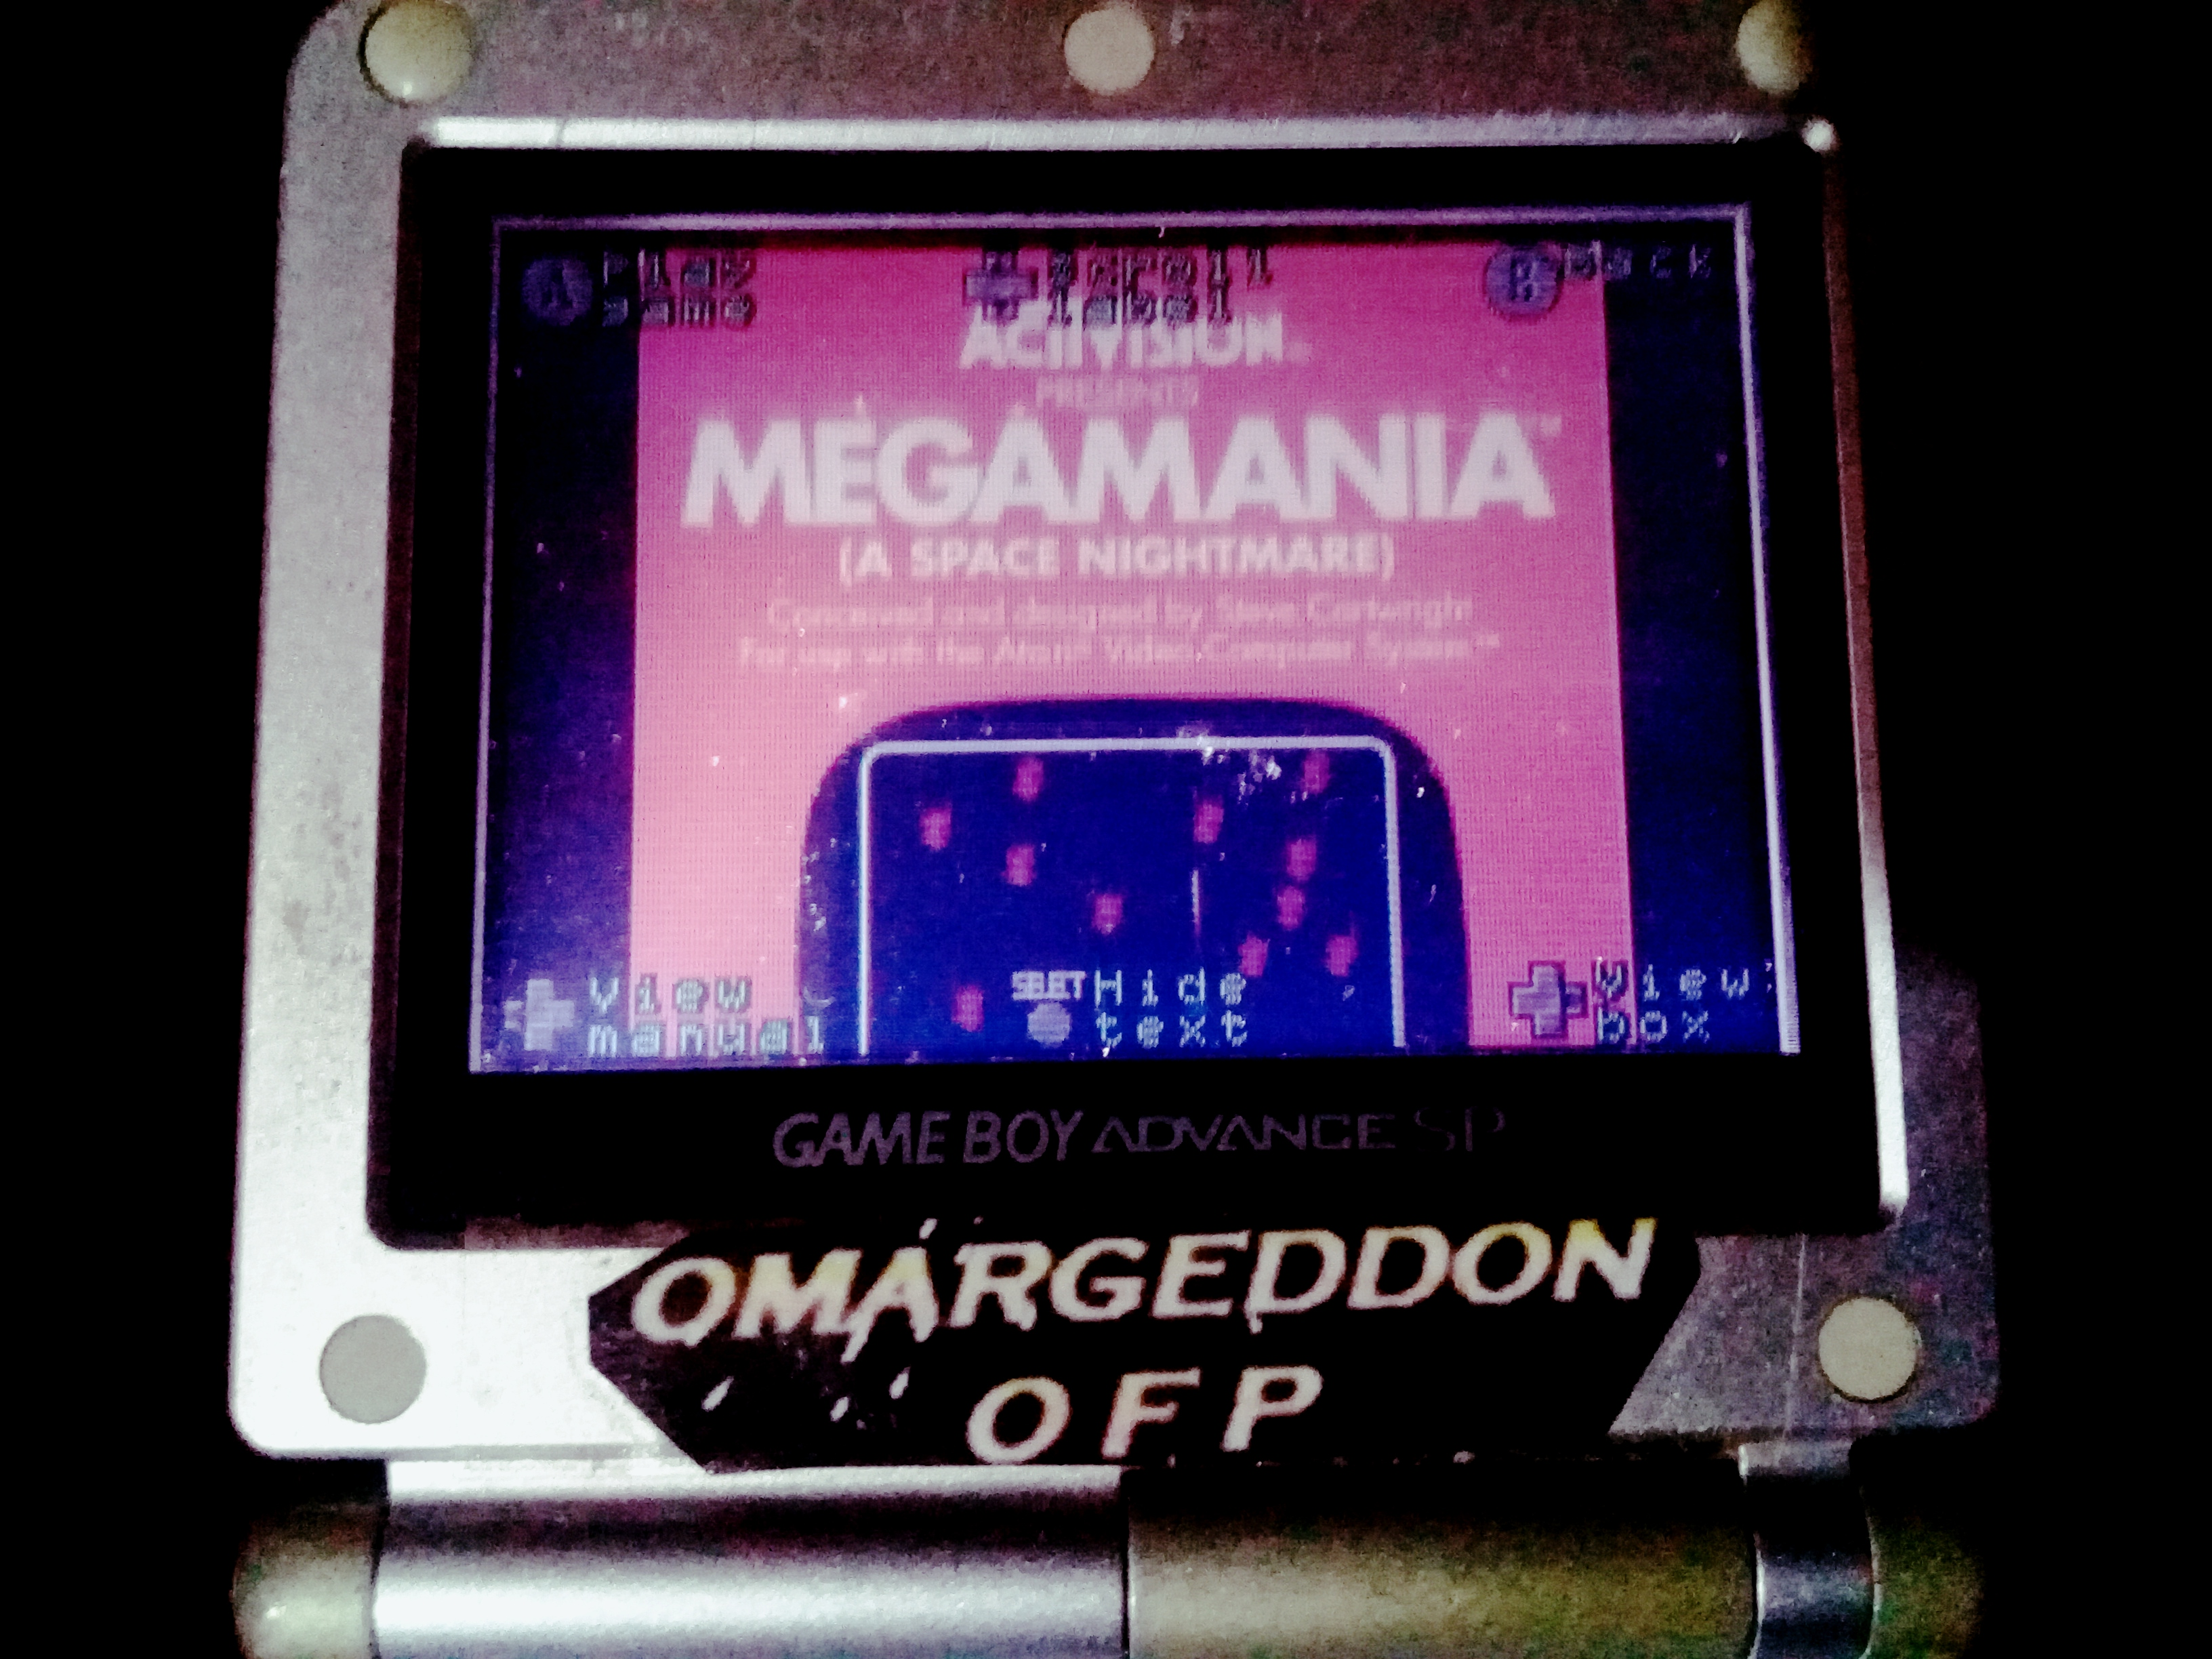 omargeddon: Activision Anthology: Megamania [Game 1B] (GBA) 116,970 points on 2020-08-15 17:19:30